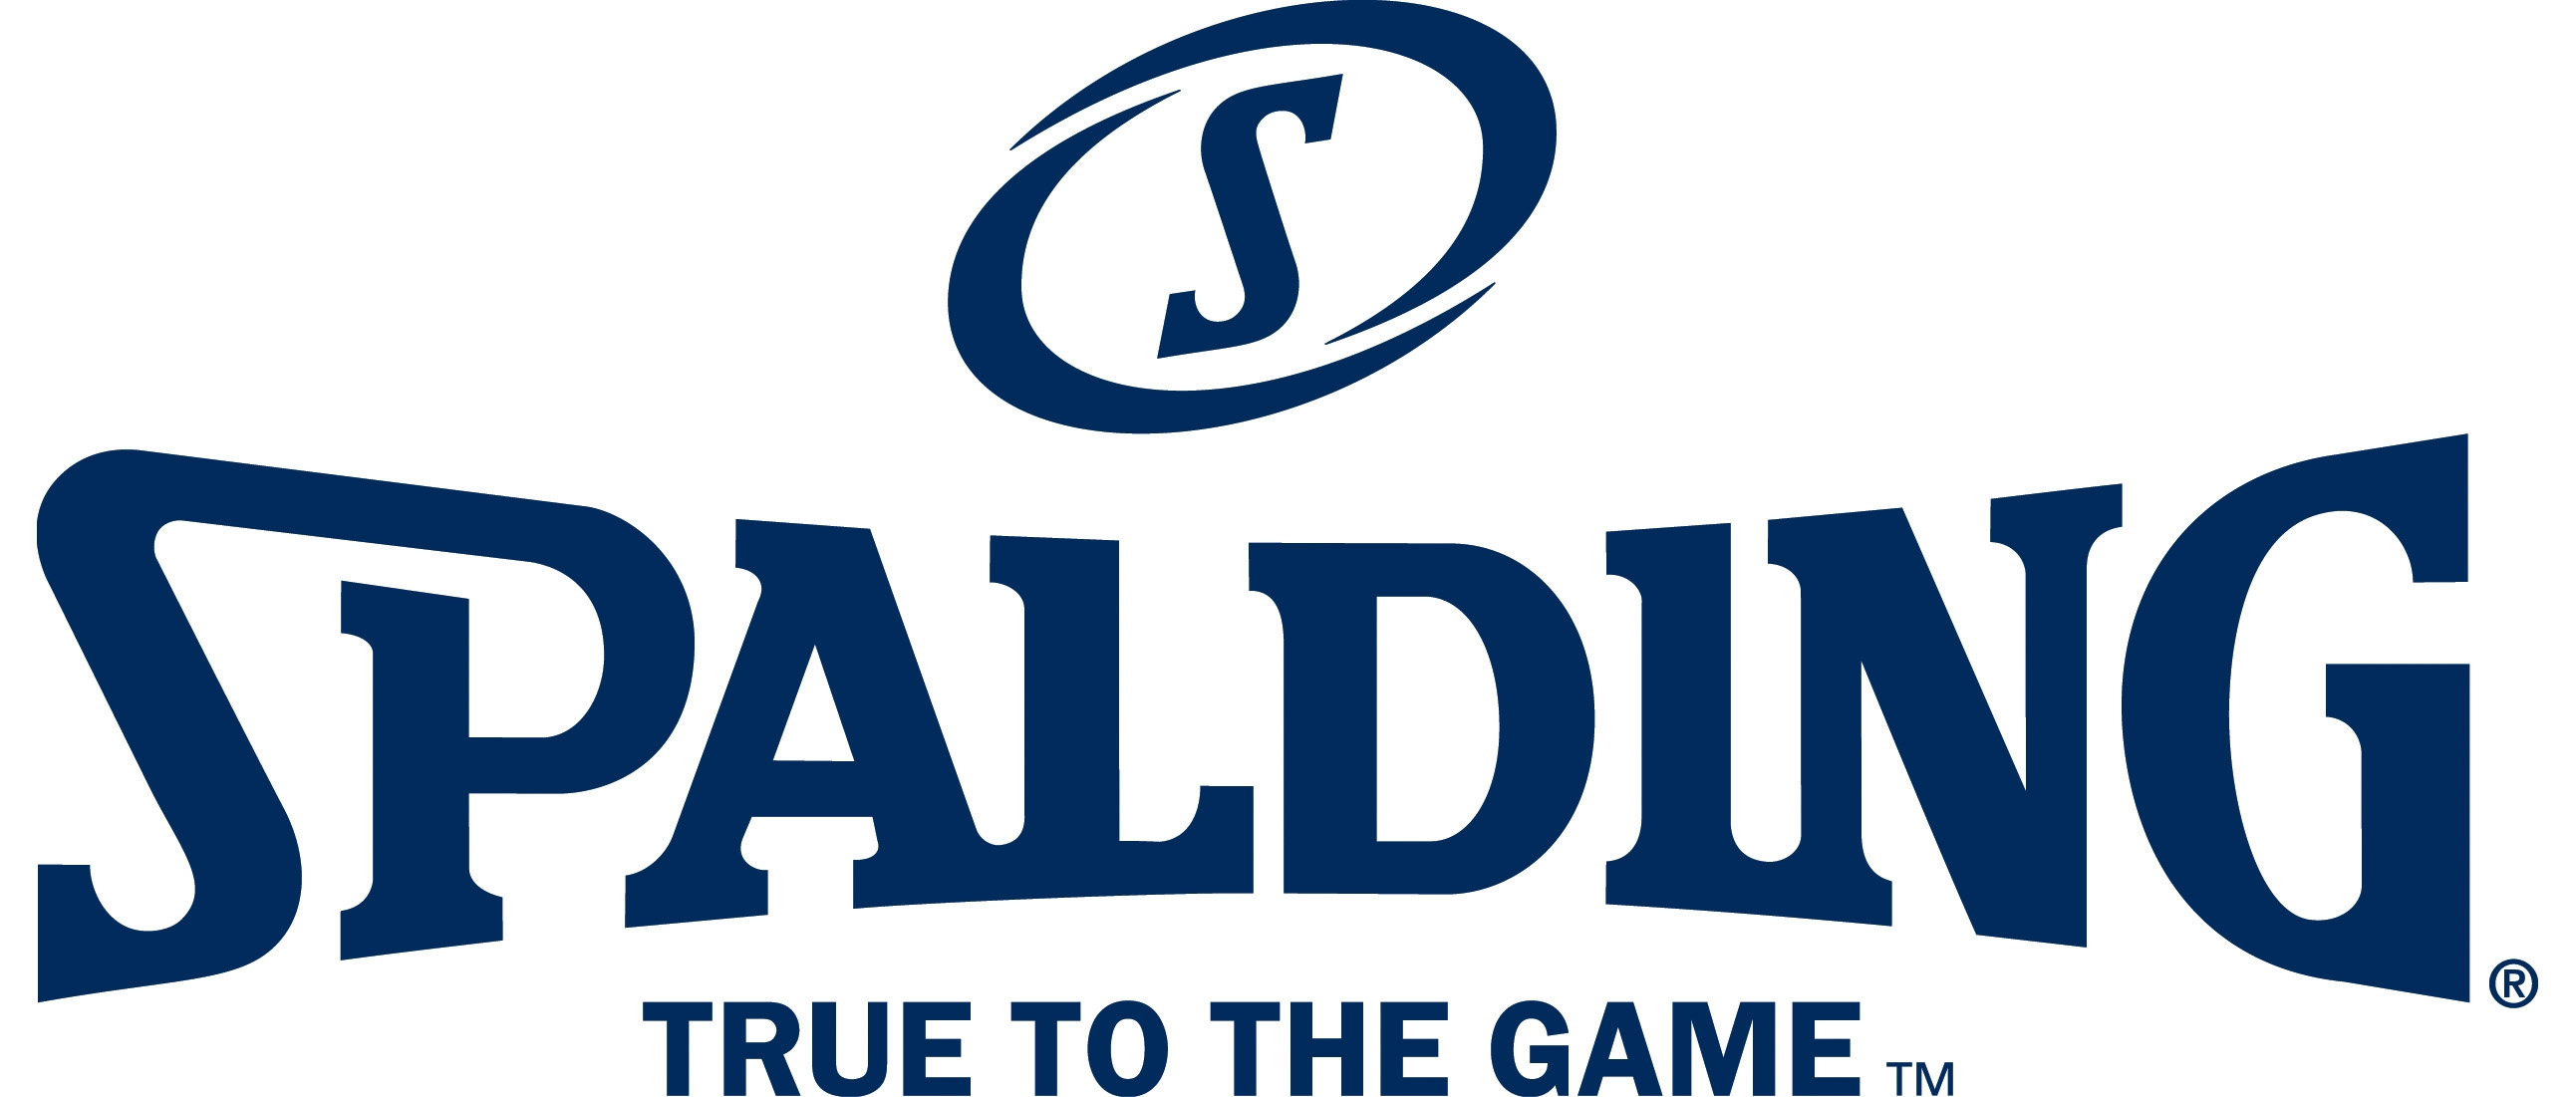 Spalding Logo Wallpaper